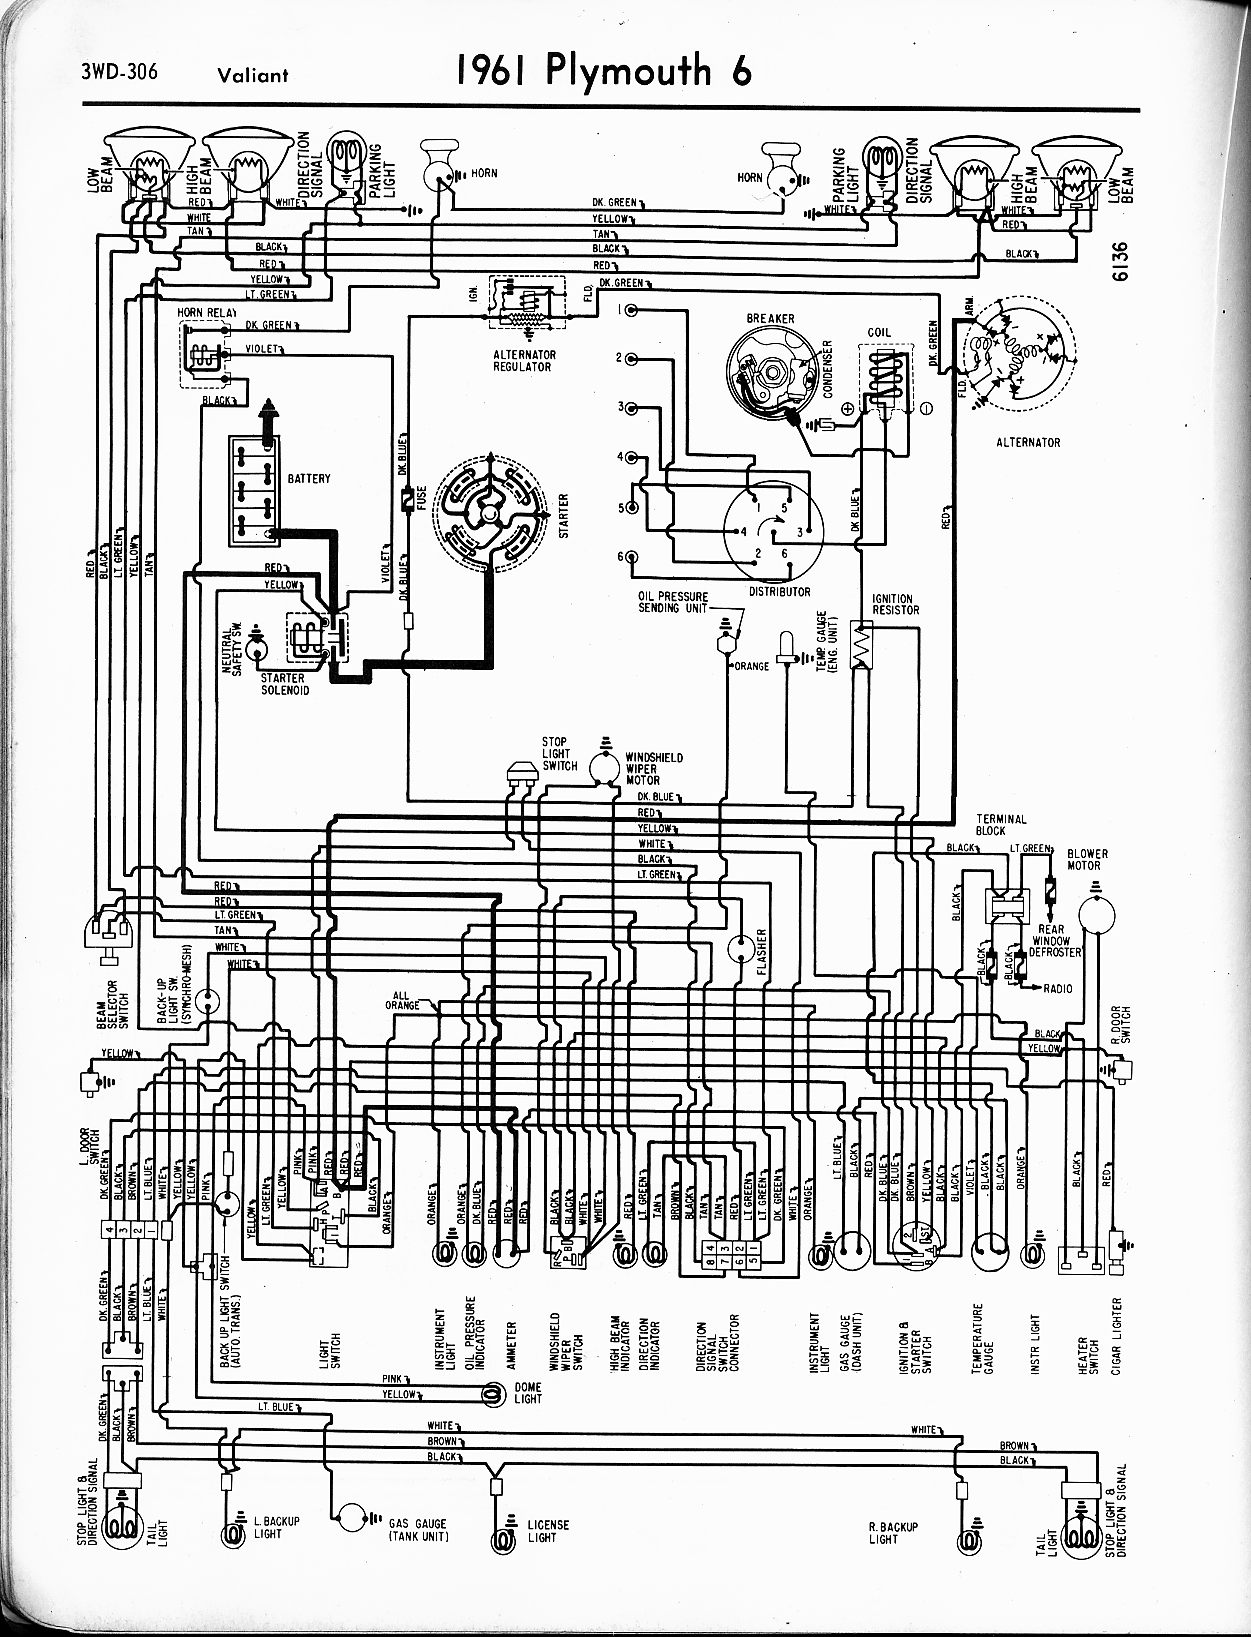 Wiring Diagram 73 Cuda - Wiring Diagrams Value on